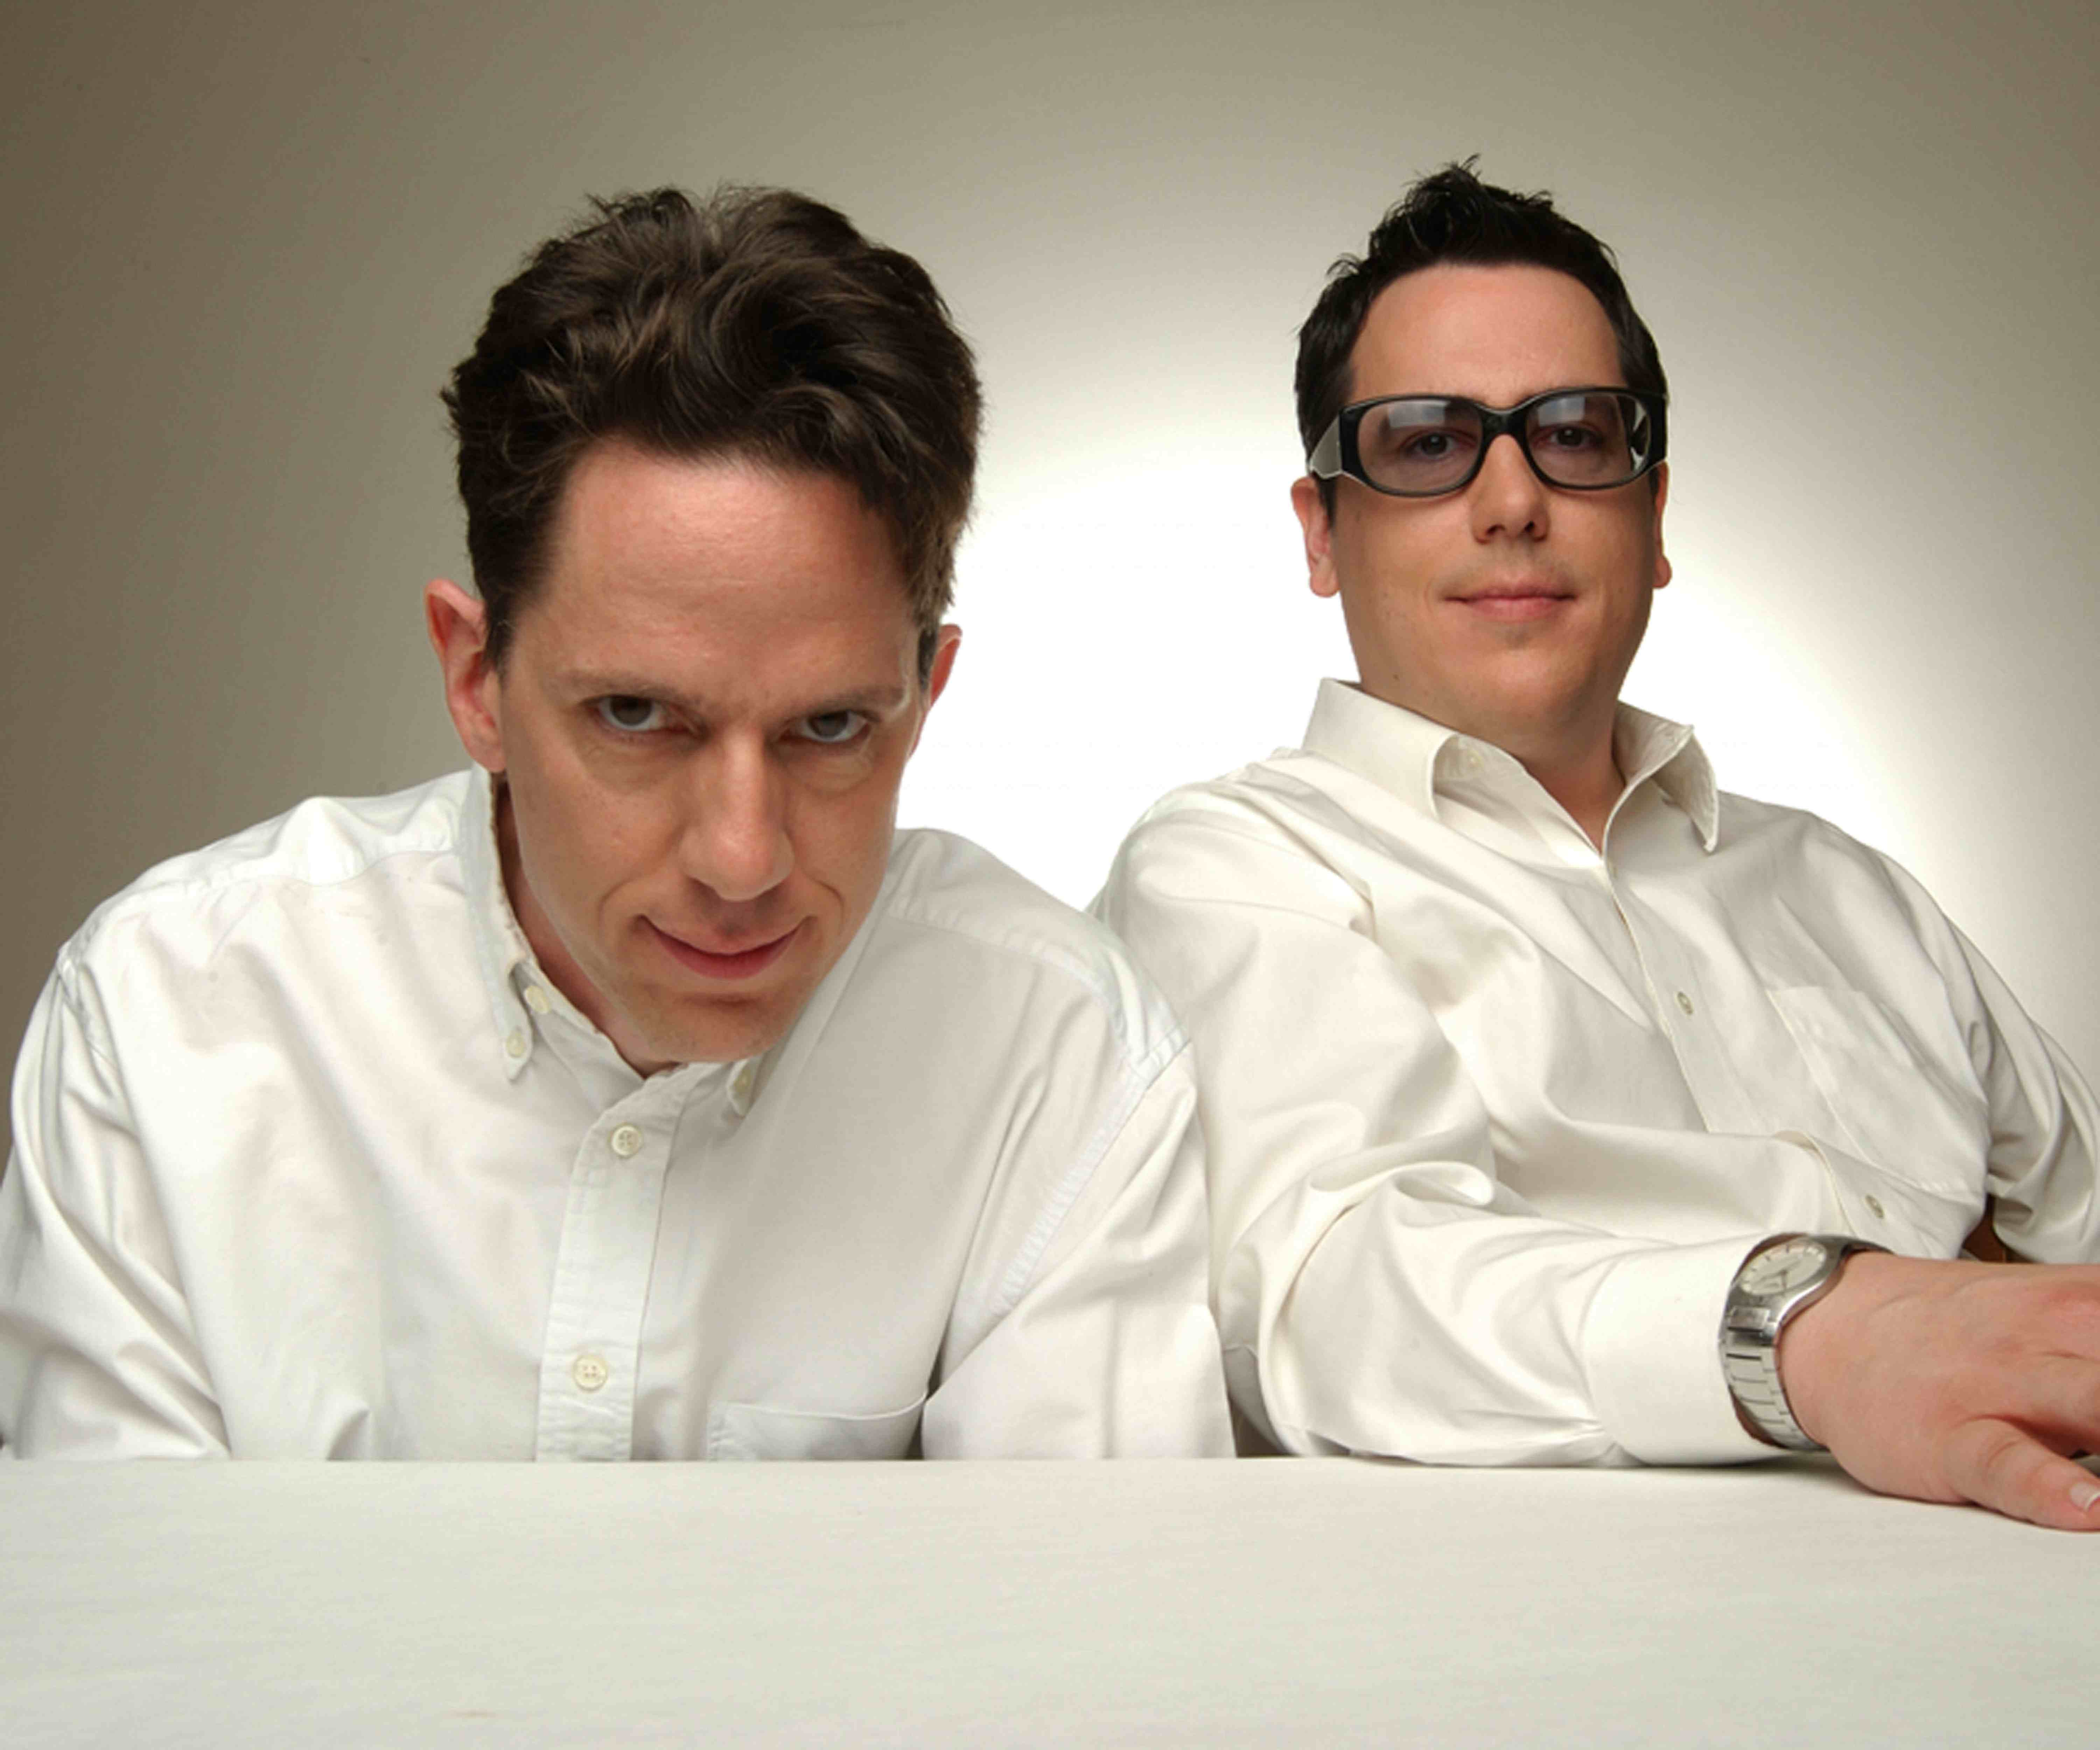 They Might Be Giants - IMDb